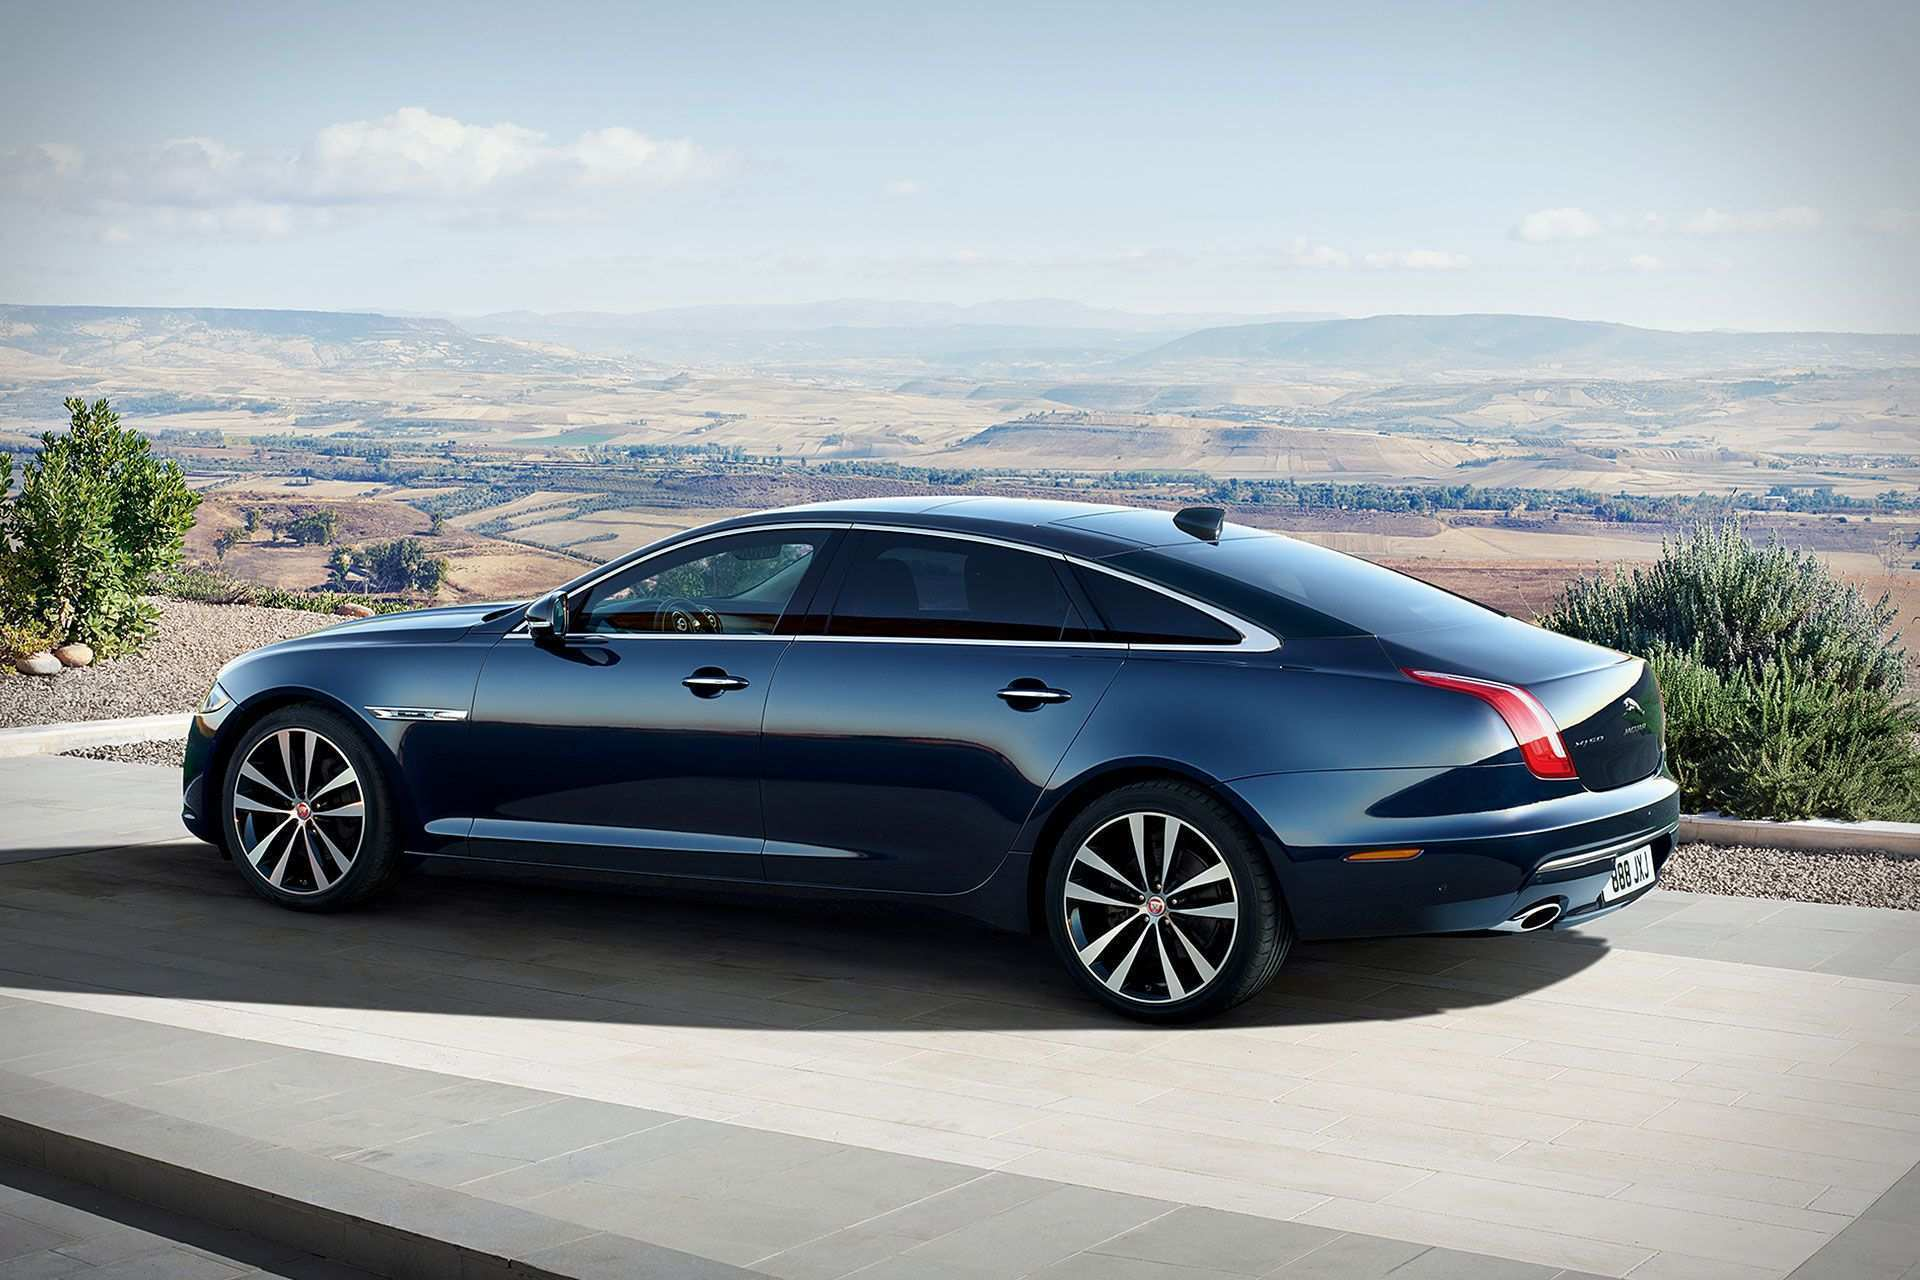 76 Best Review The 2019 Jaguar Xj Autobiography Redesign New Review for The 2019 Jaguar Xj Autobiography Redesign